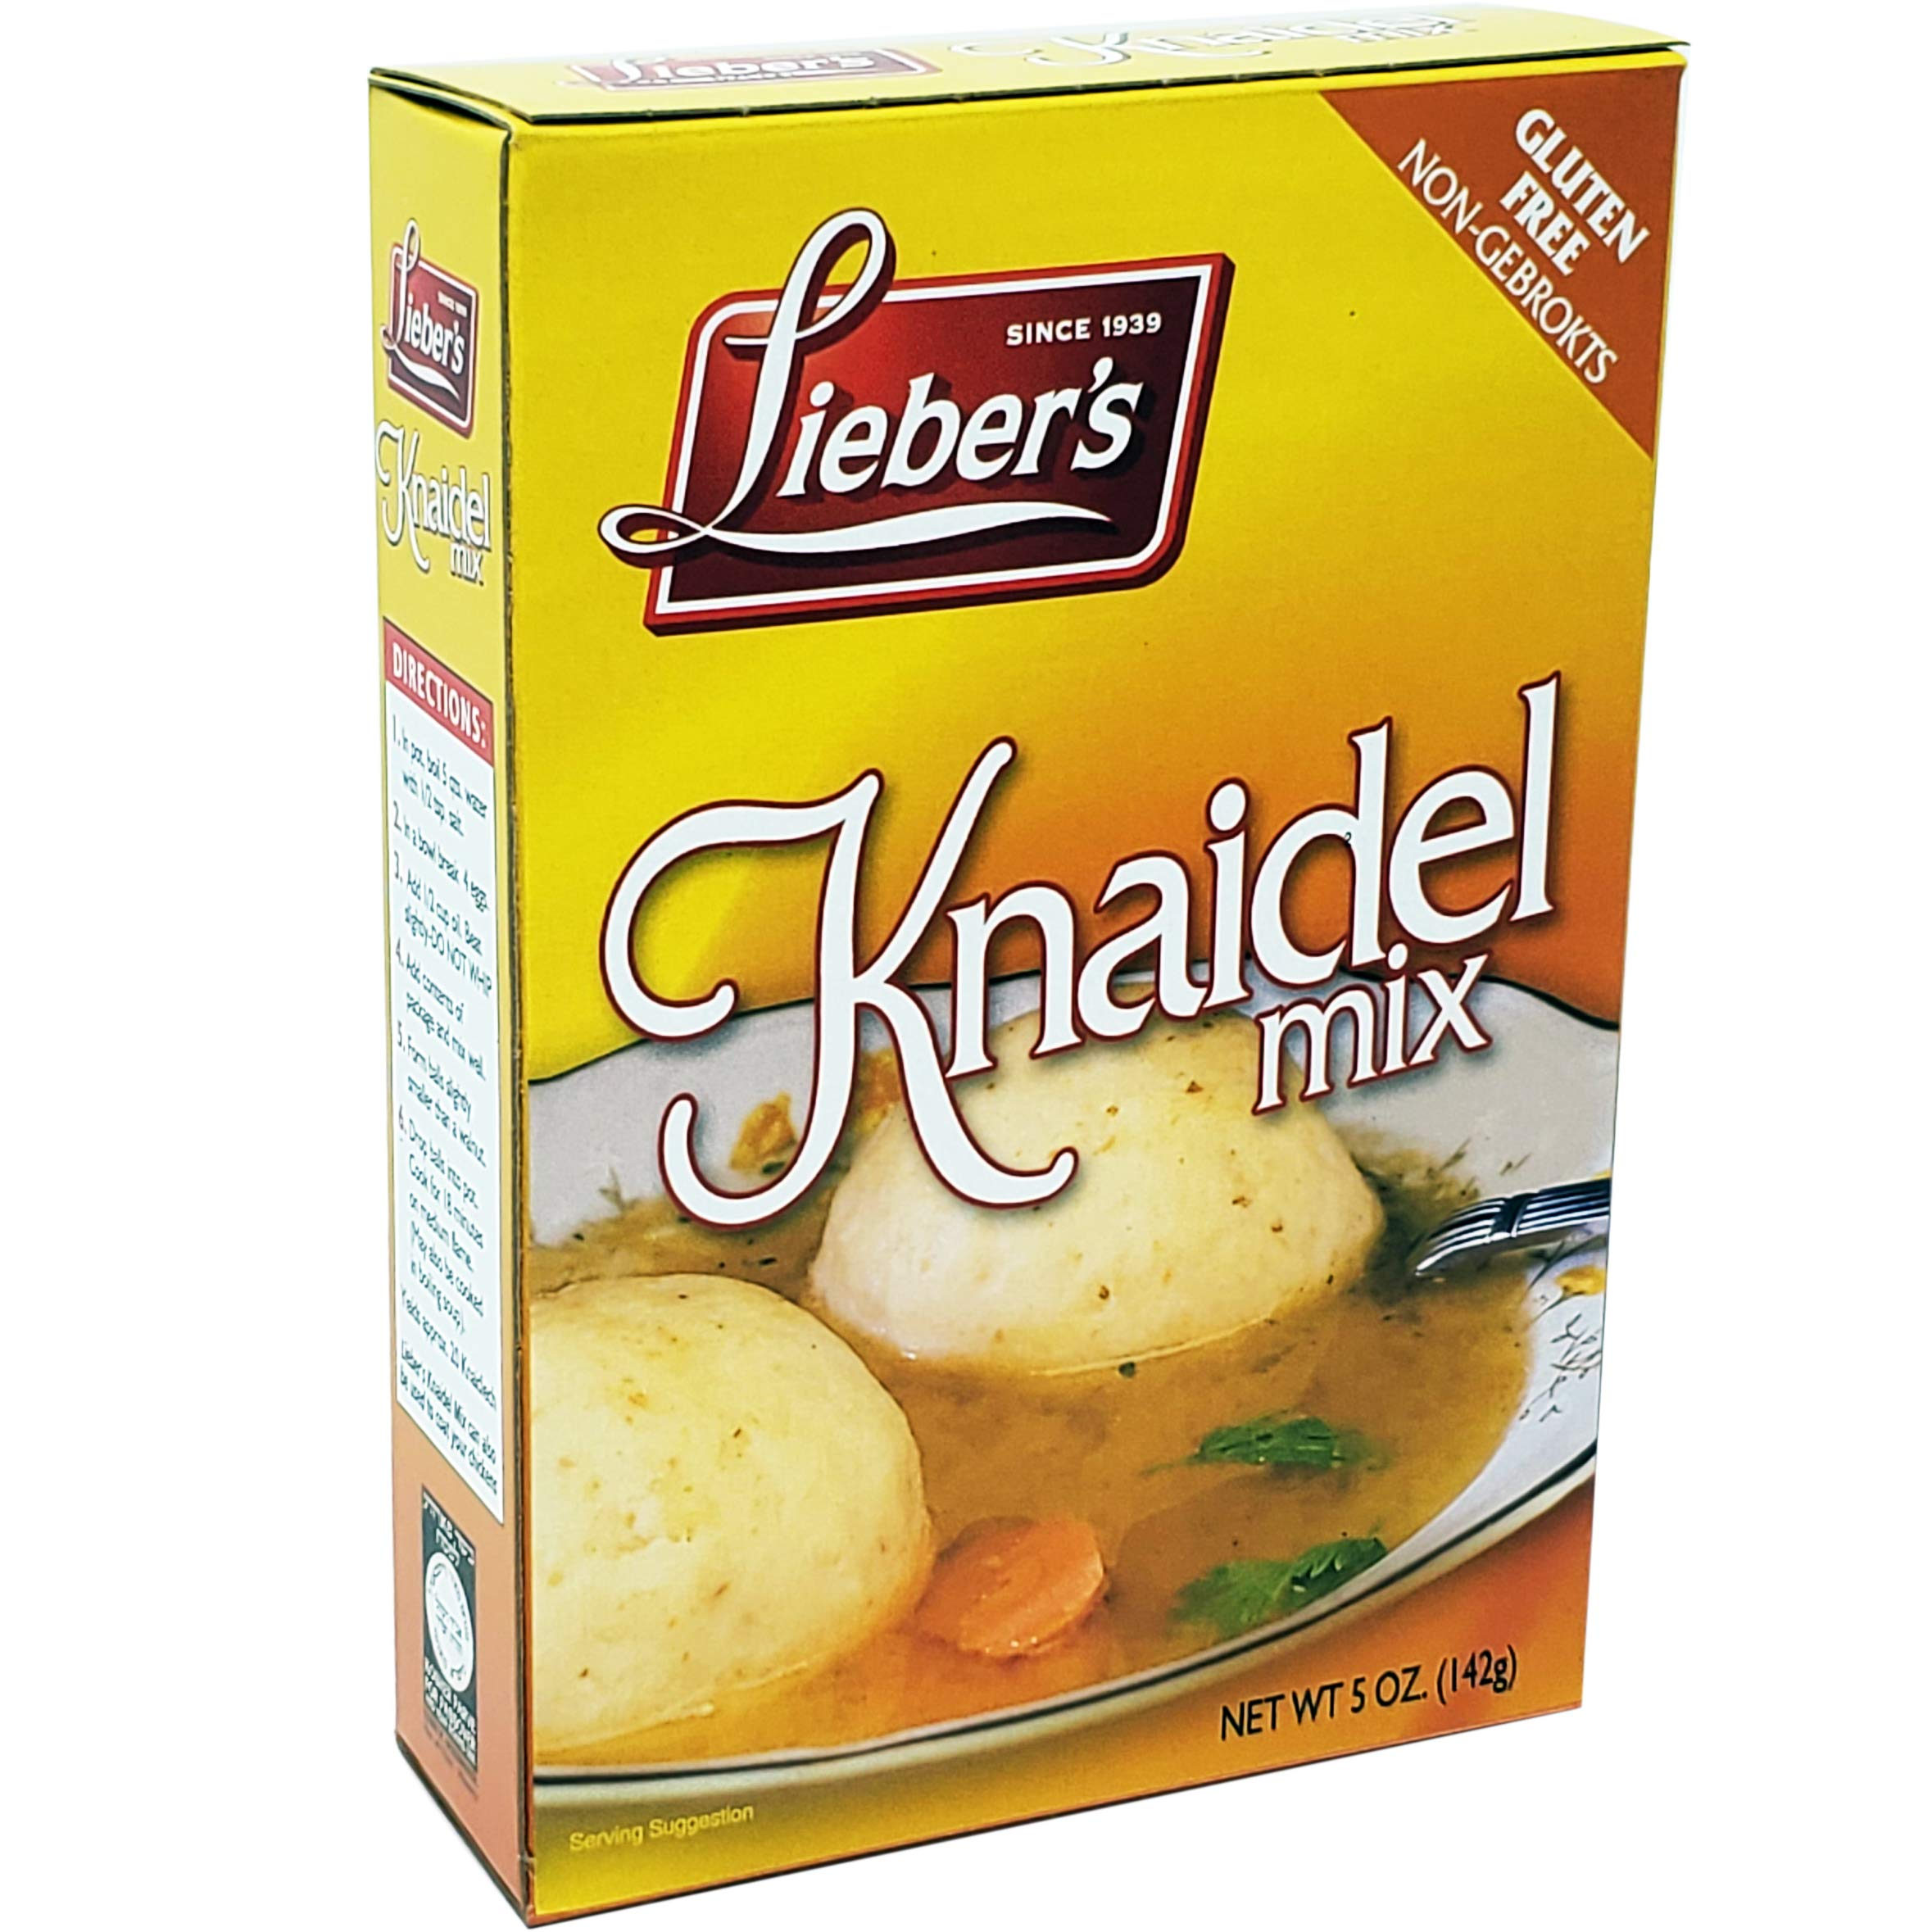 Matzo Ball Knaidel Mix, Gluten Free, Kosher For Passover, 5 Ounce Box (Single) by Lieber's